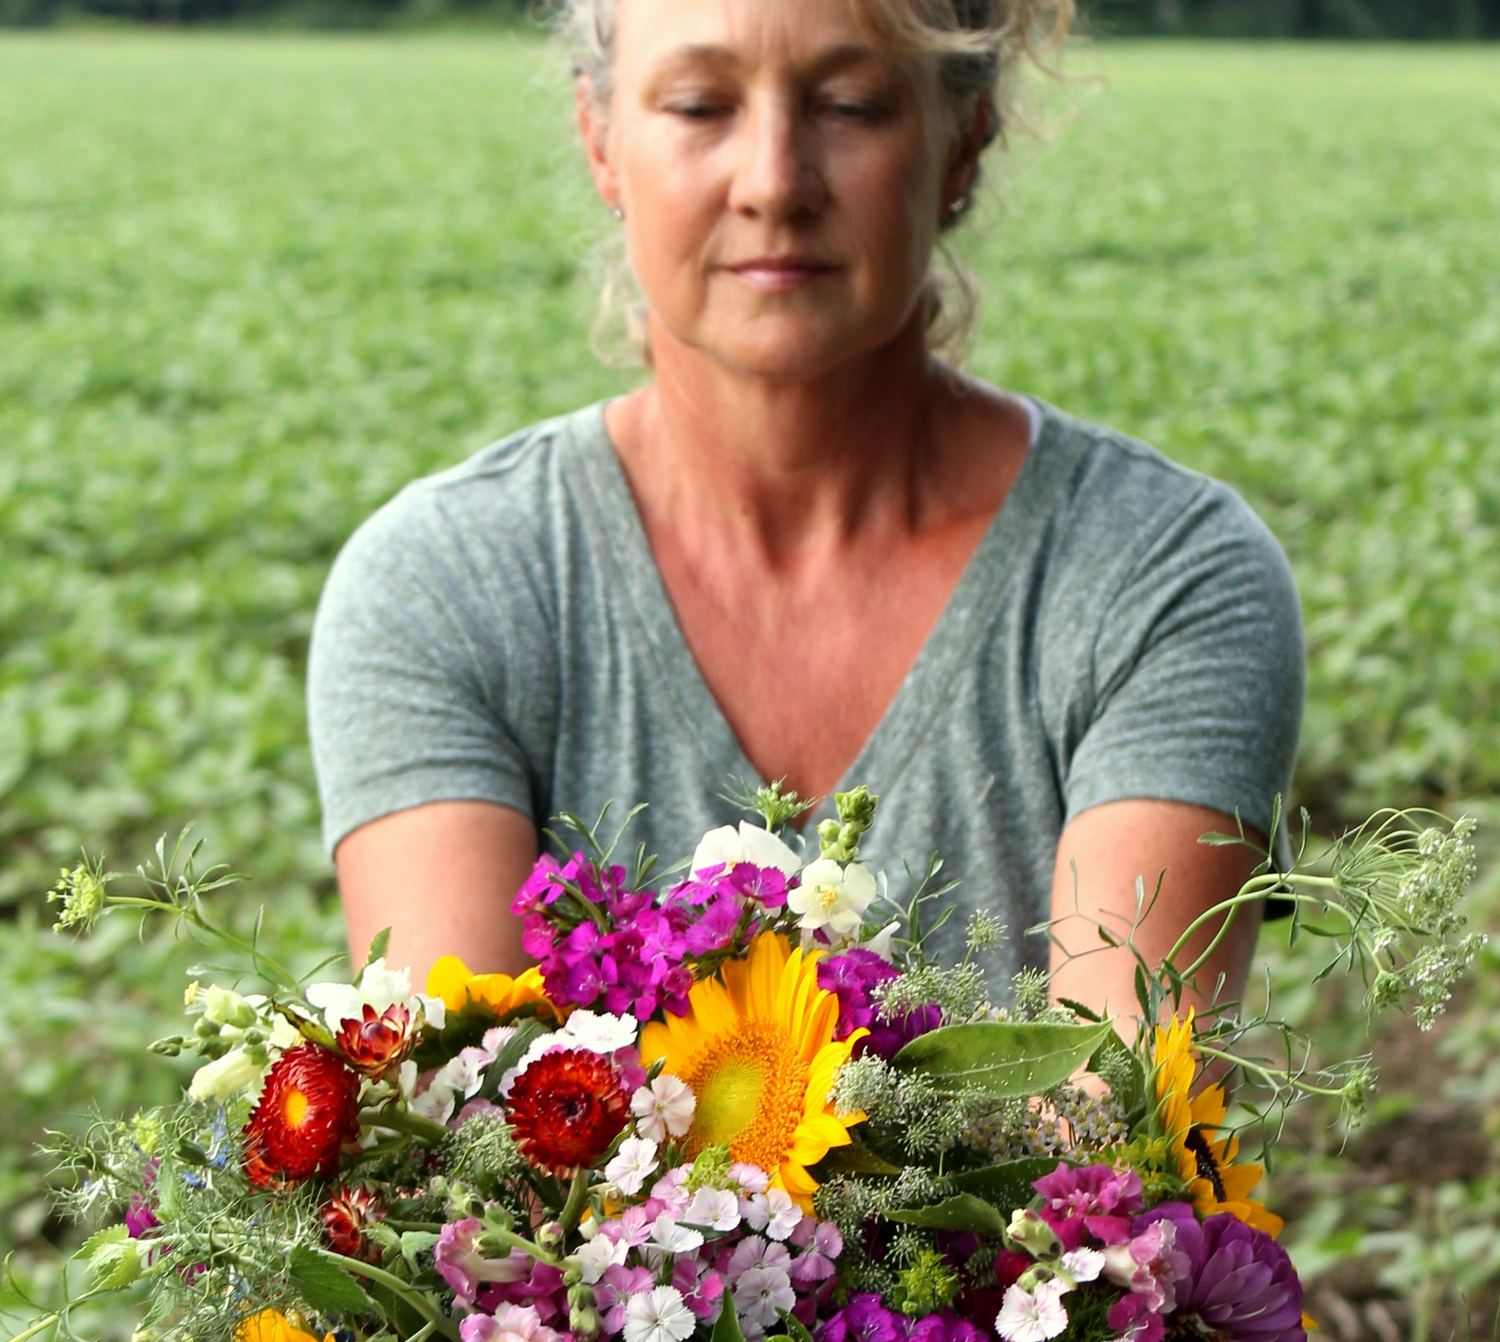 Farmer Kathy sharing the bounty of flower from the Farm with you . . .bouquets for special occasions and as well as hands on experience field to vase classes